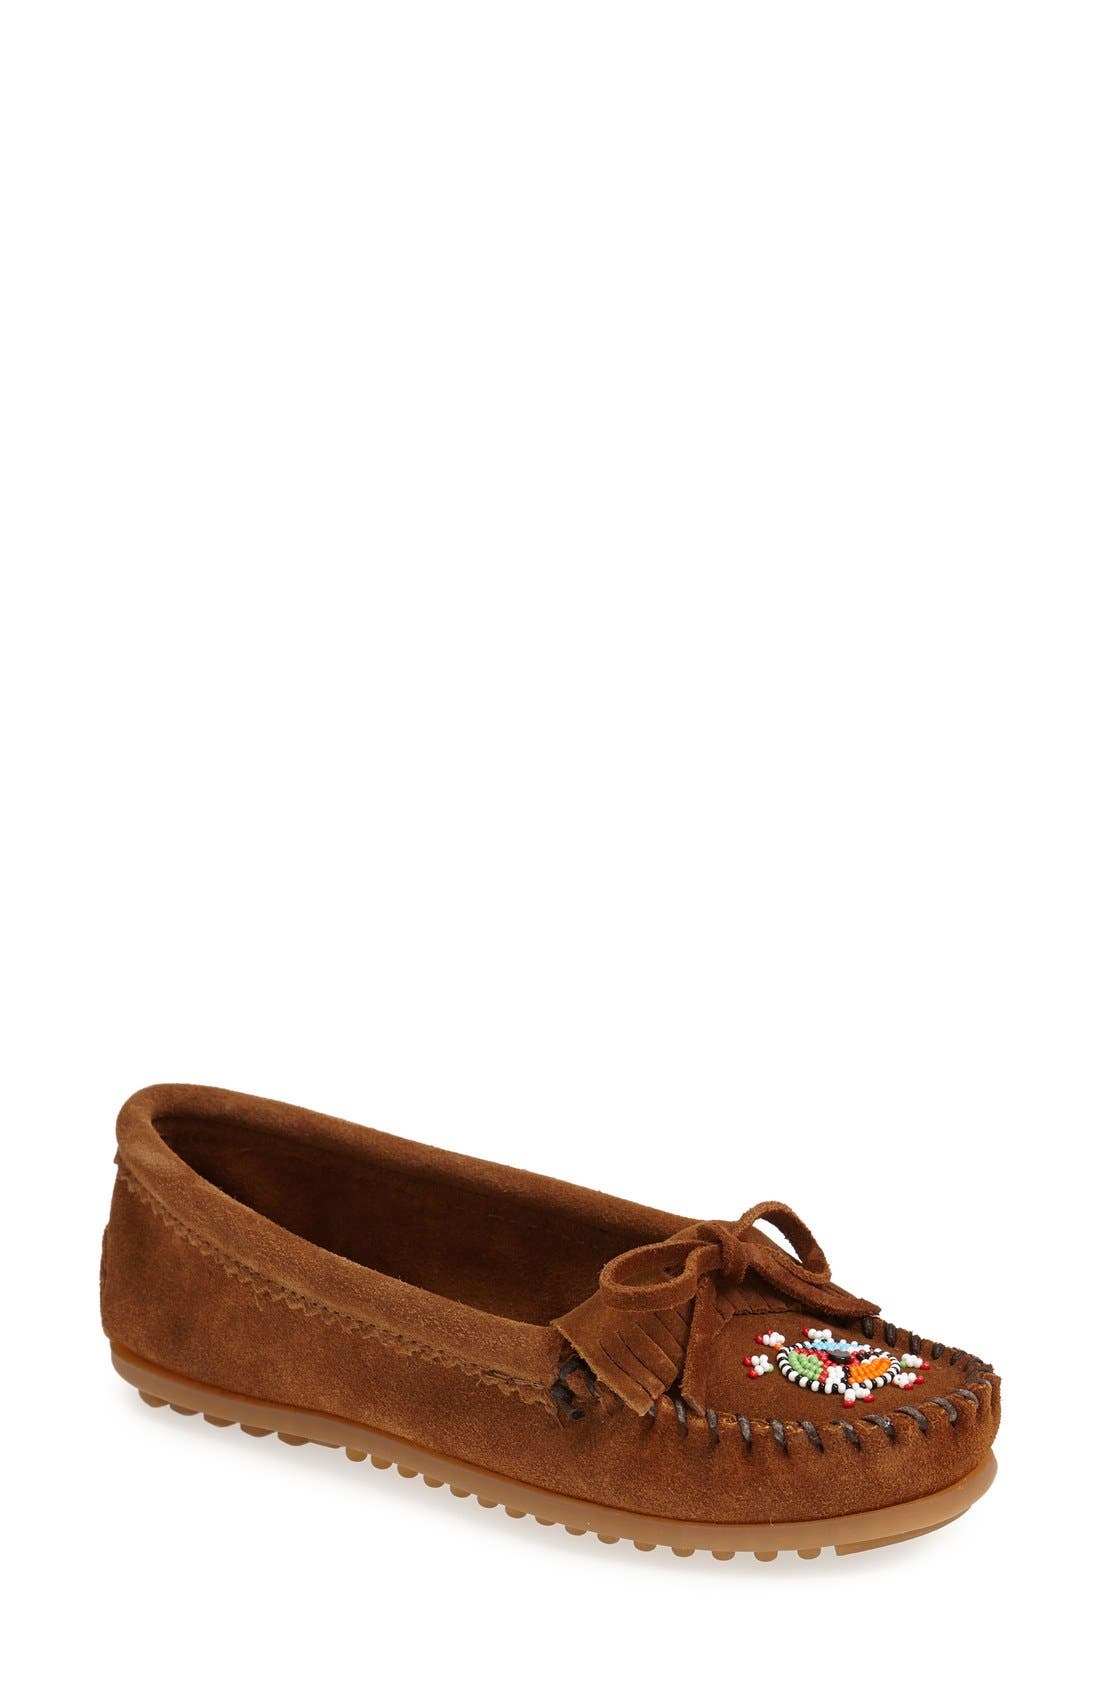 Minnetonka 'Me to We Artisans - Kilty' Beaded Moccasin (Women)